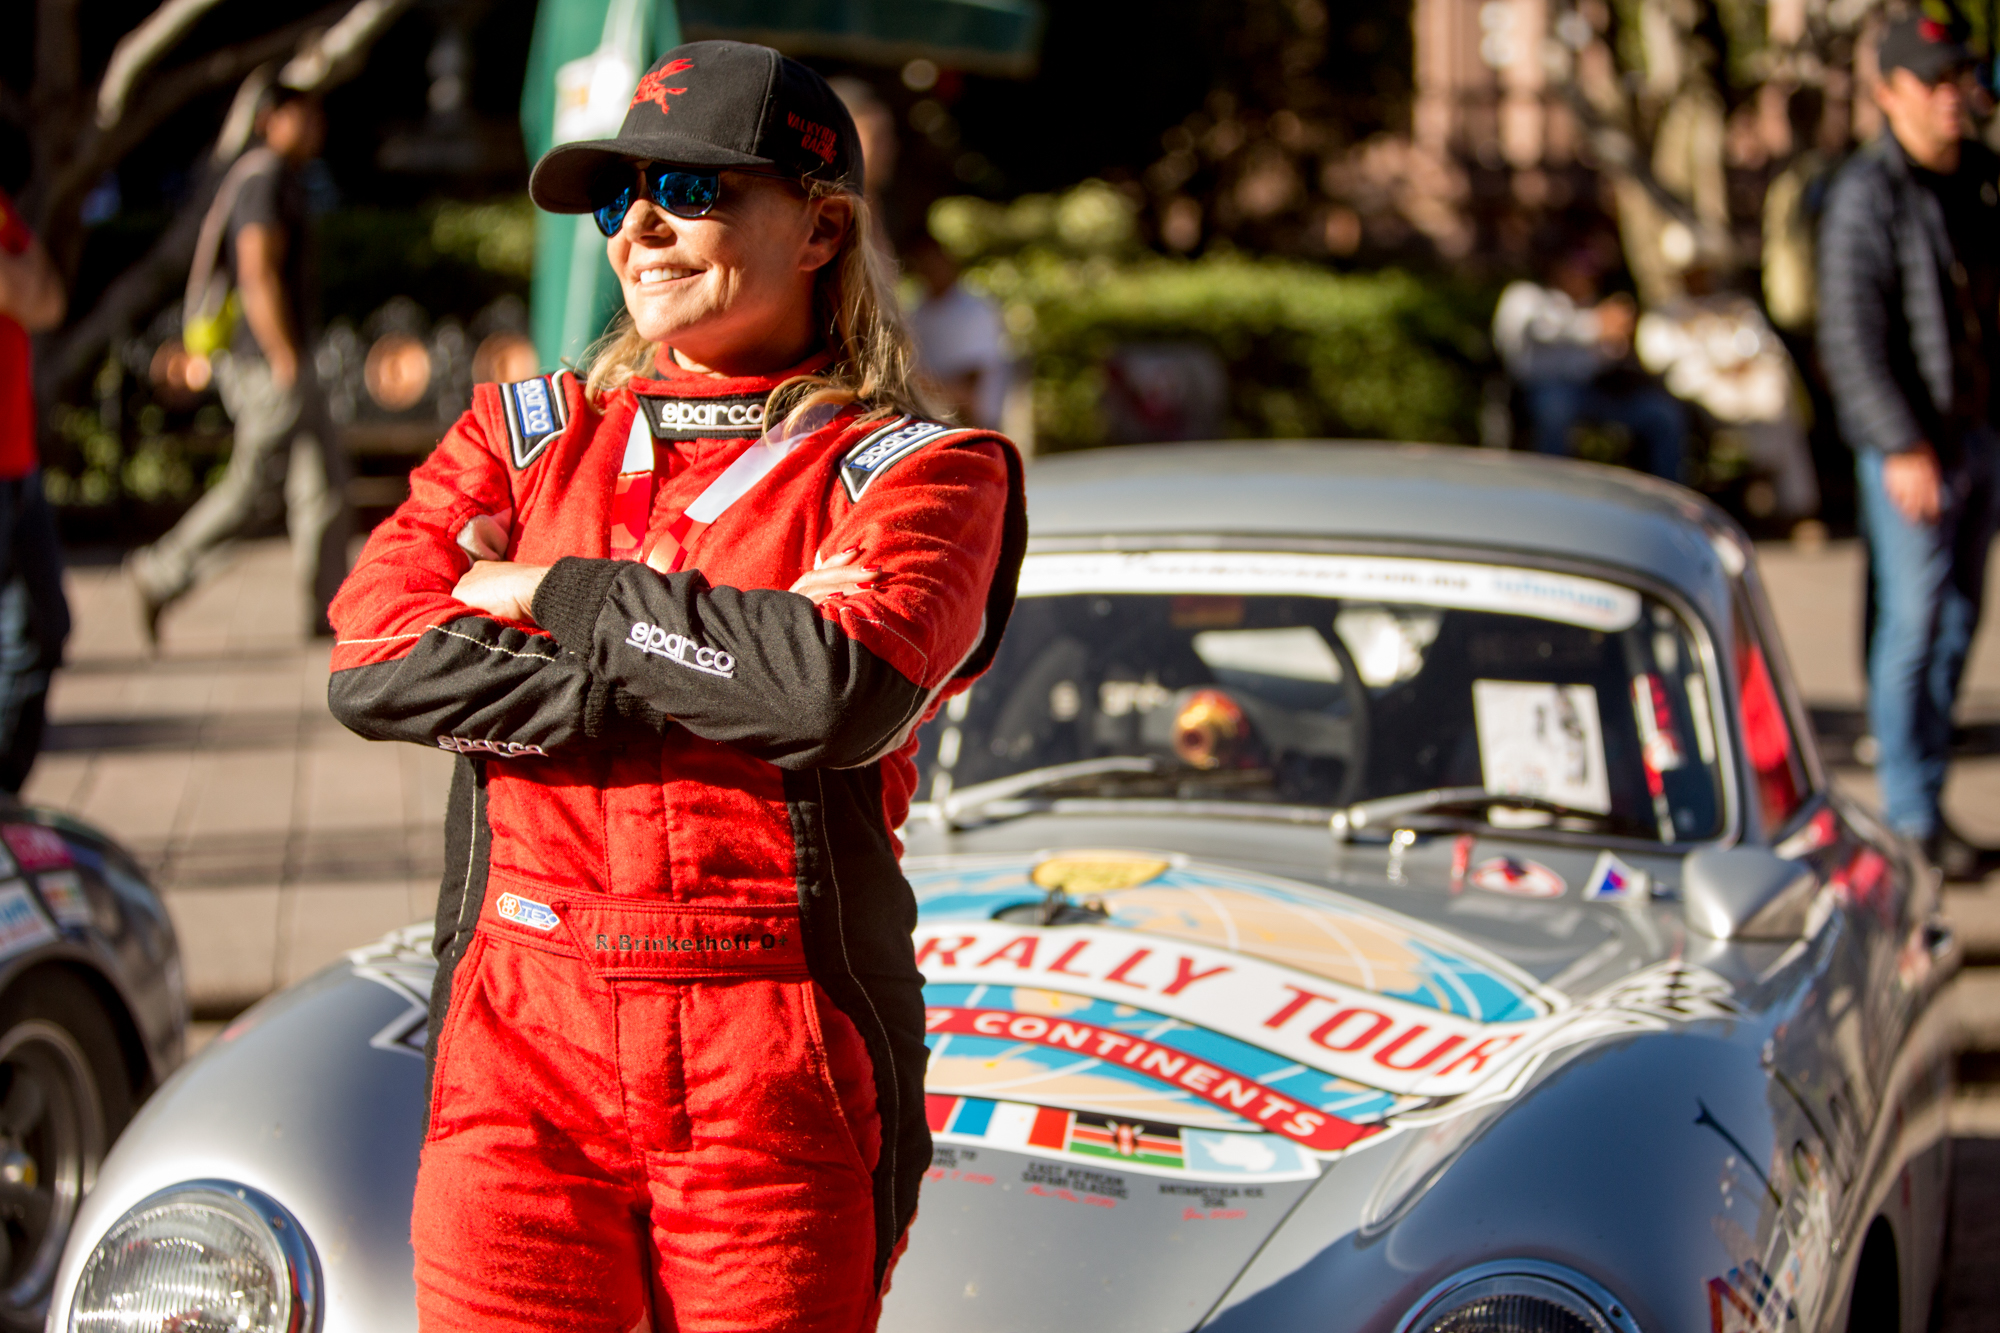 Renée Brinkerhoff began racing at age 57 and has run La Carrera Panamericana four times.